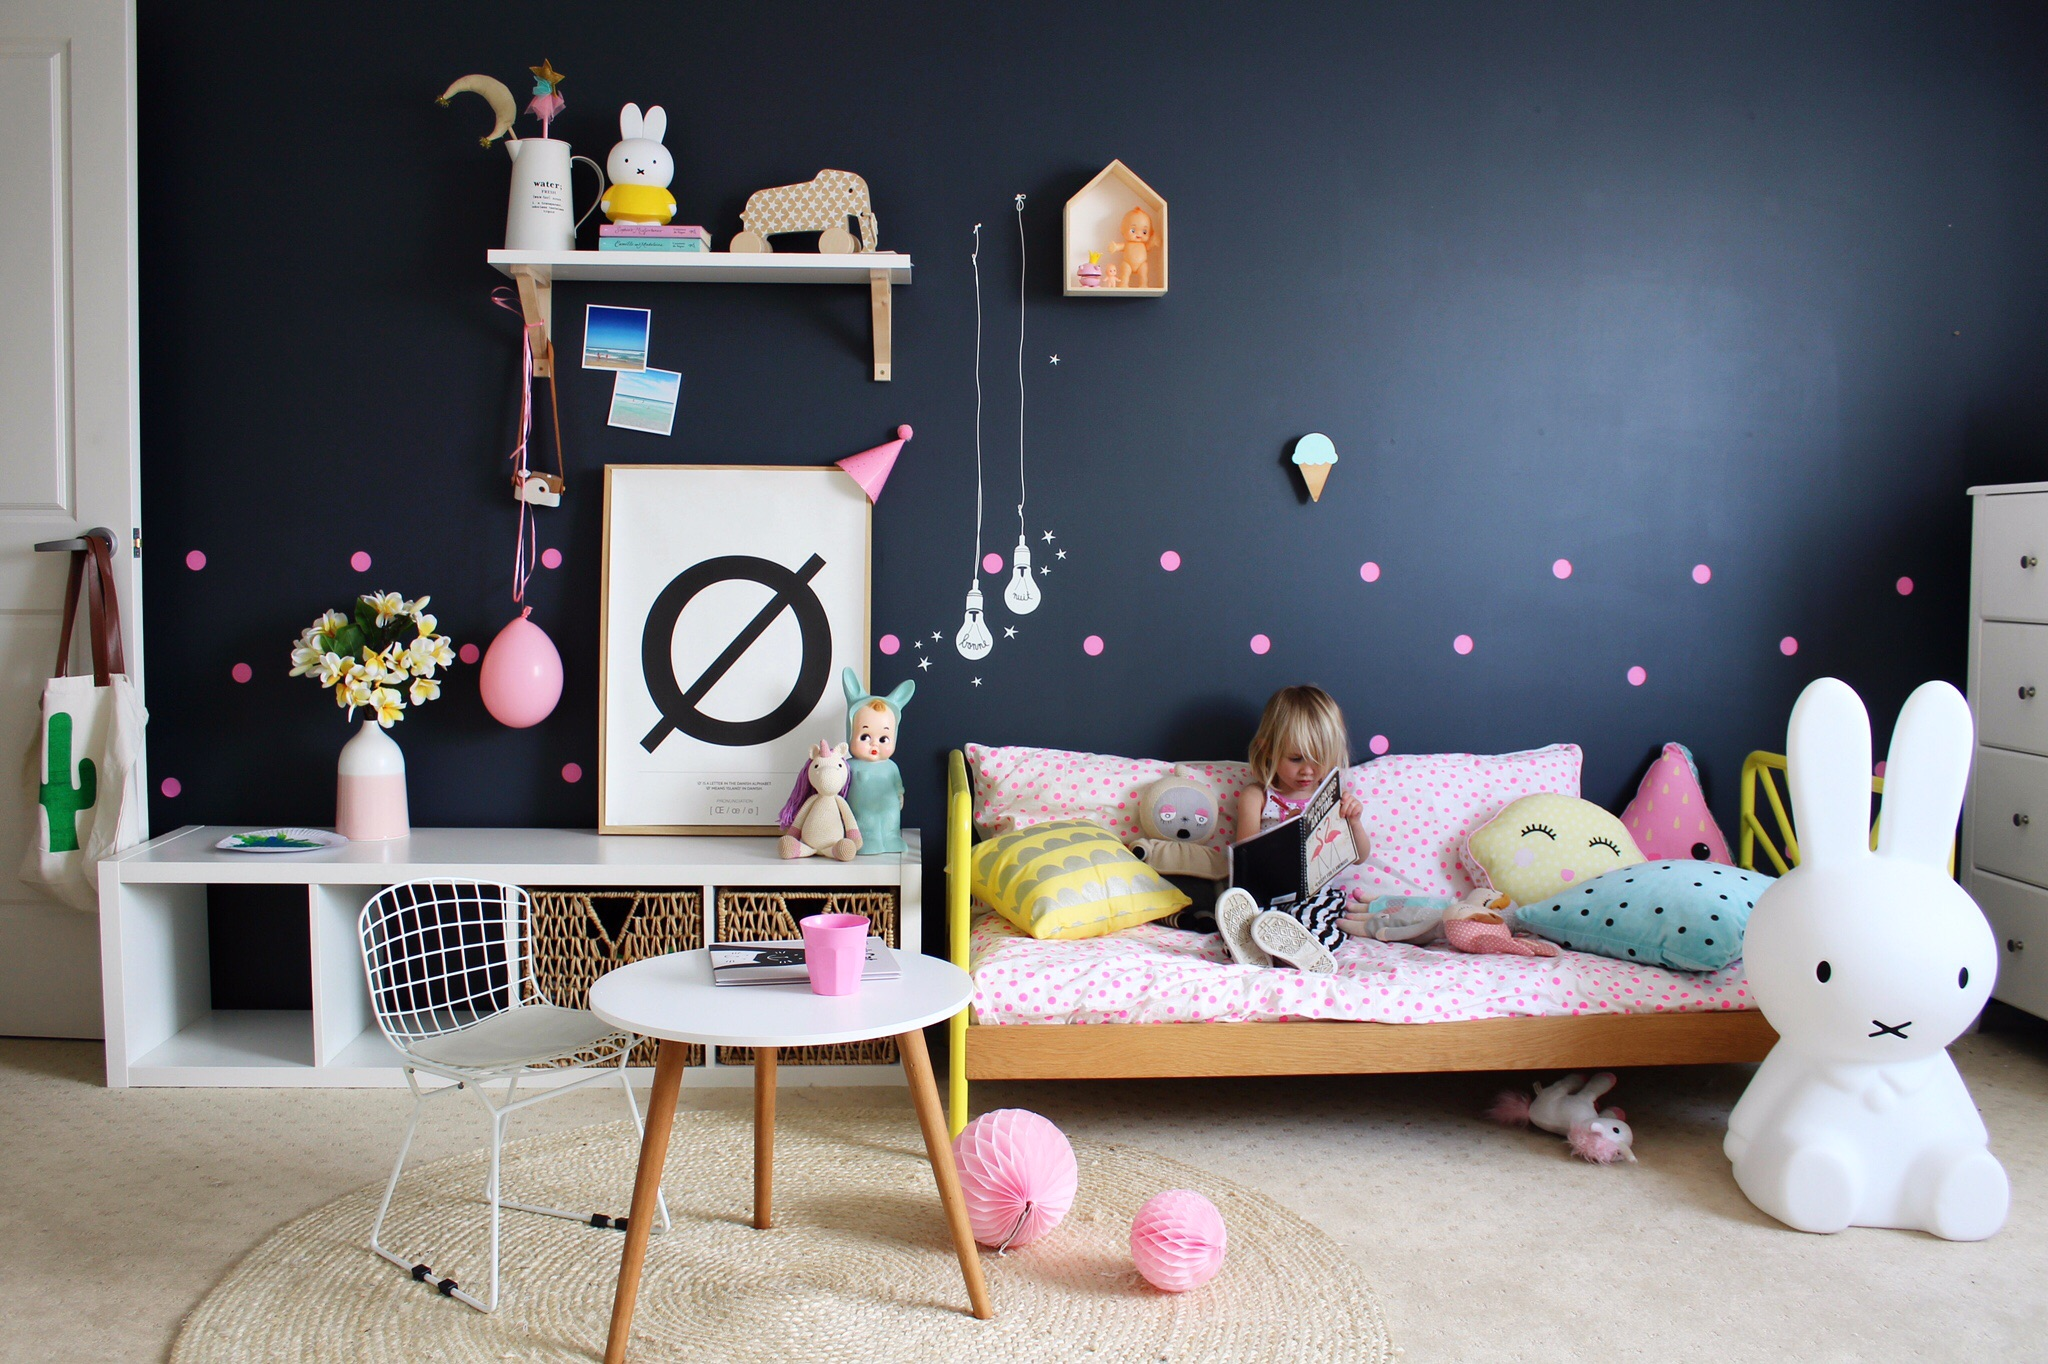 Kids' bedroom ideas - interiors and decor - MIMI'lou feature on www.fourcheekymonkeys.com